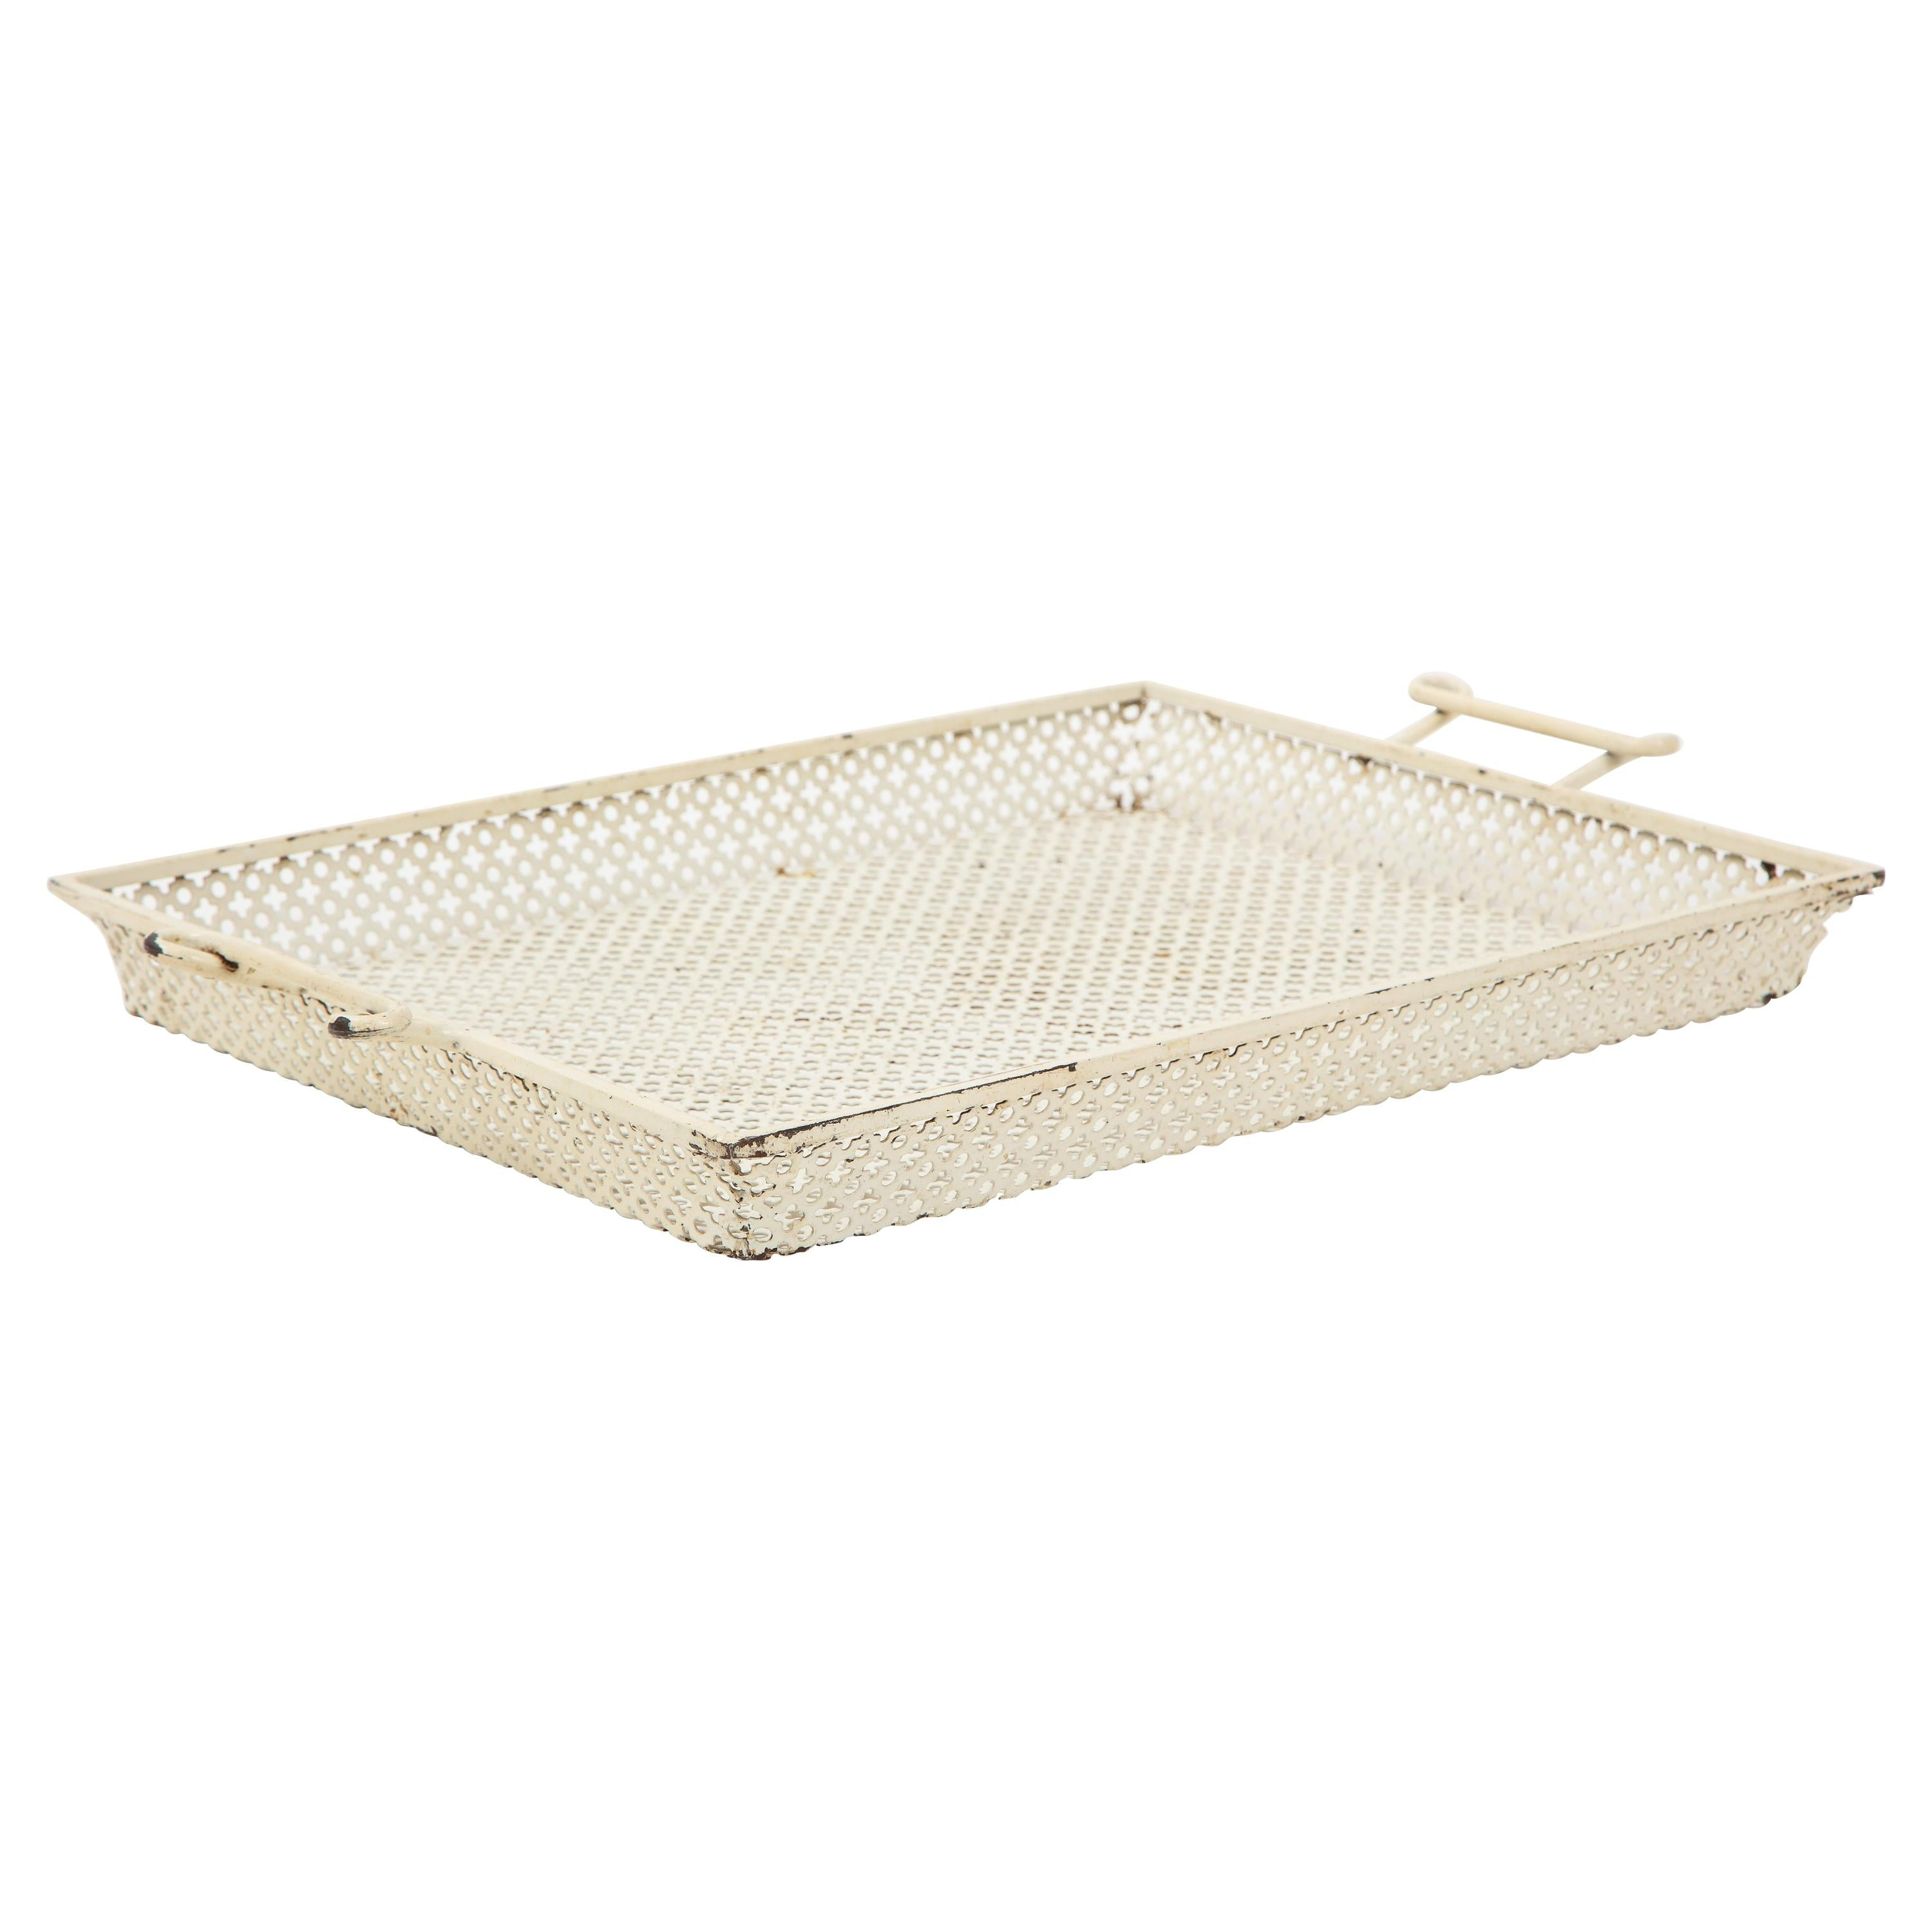 Mathieu Mategot White Lacquer Perforated Serving Tray, France, 1950